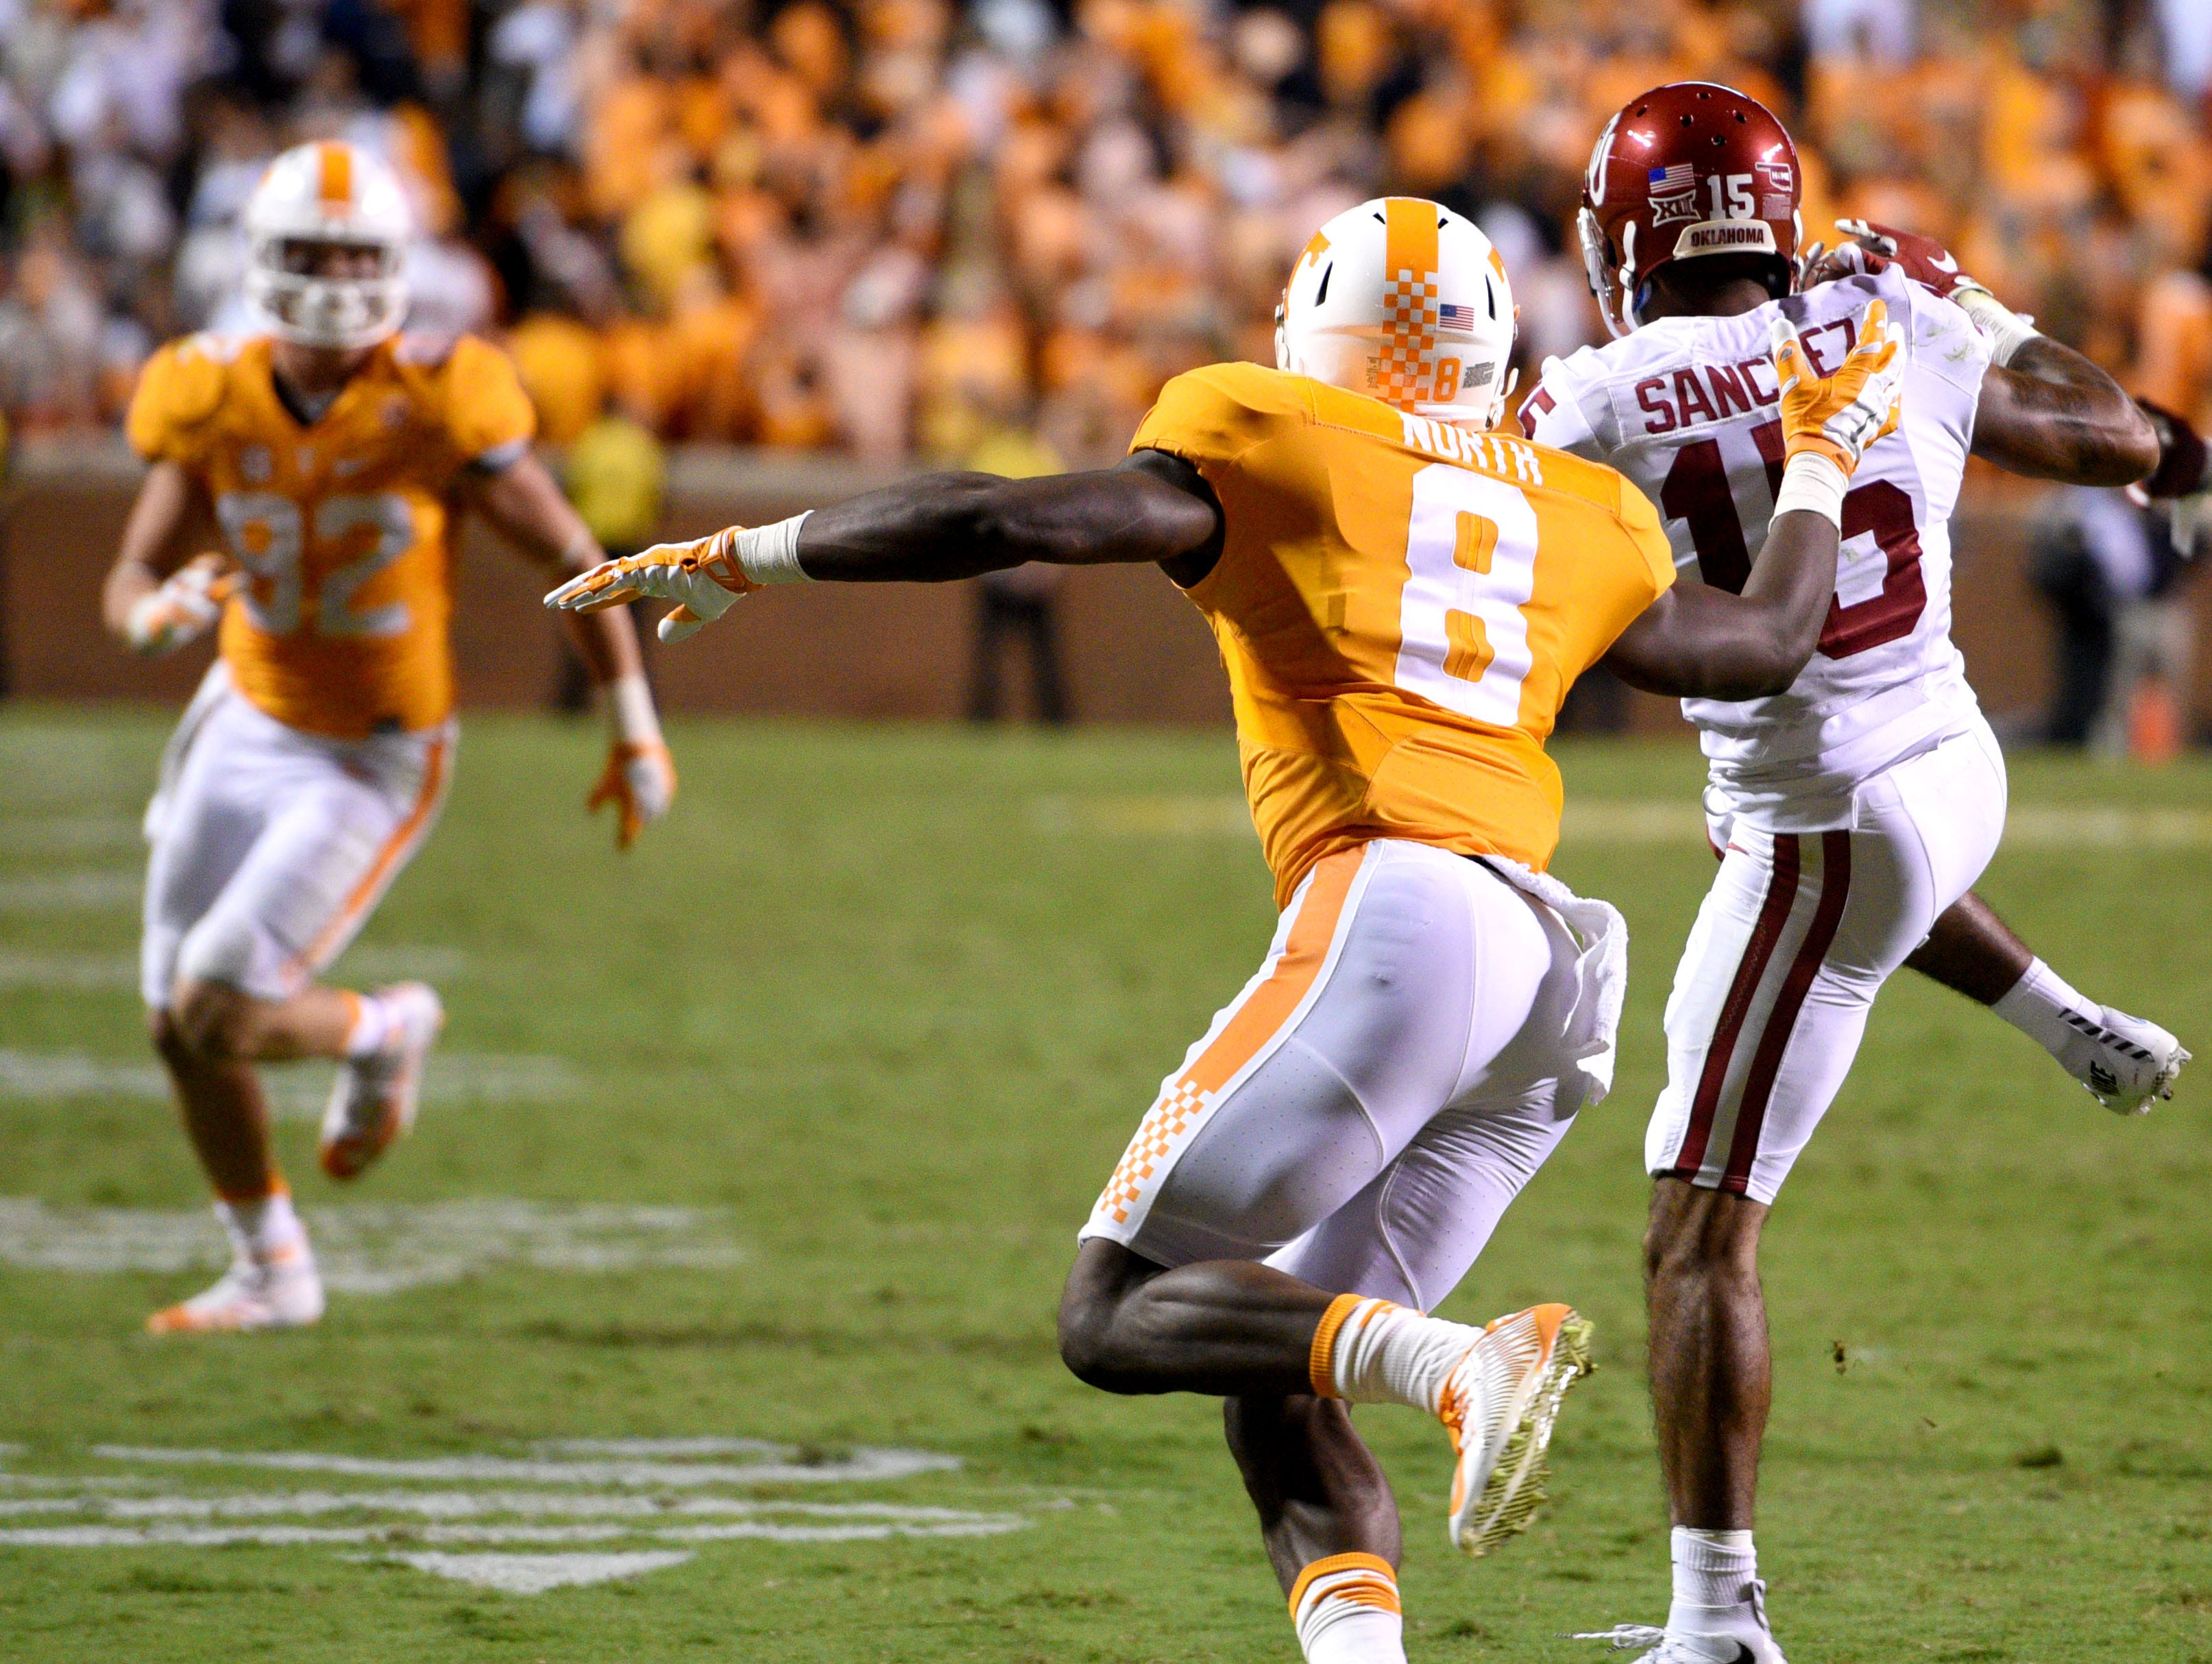 Oklahoma cornerback Zack Sanchez (15) intercepts a pass meant for Tennessee wide receiver Marquez North (8) in overtime, ending the game 31-24 on Saturday, Sept. 12, 2015 in Knoxville, Tenn.